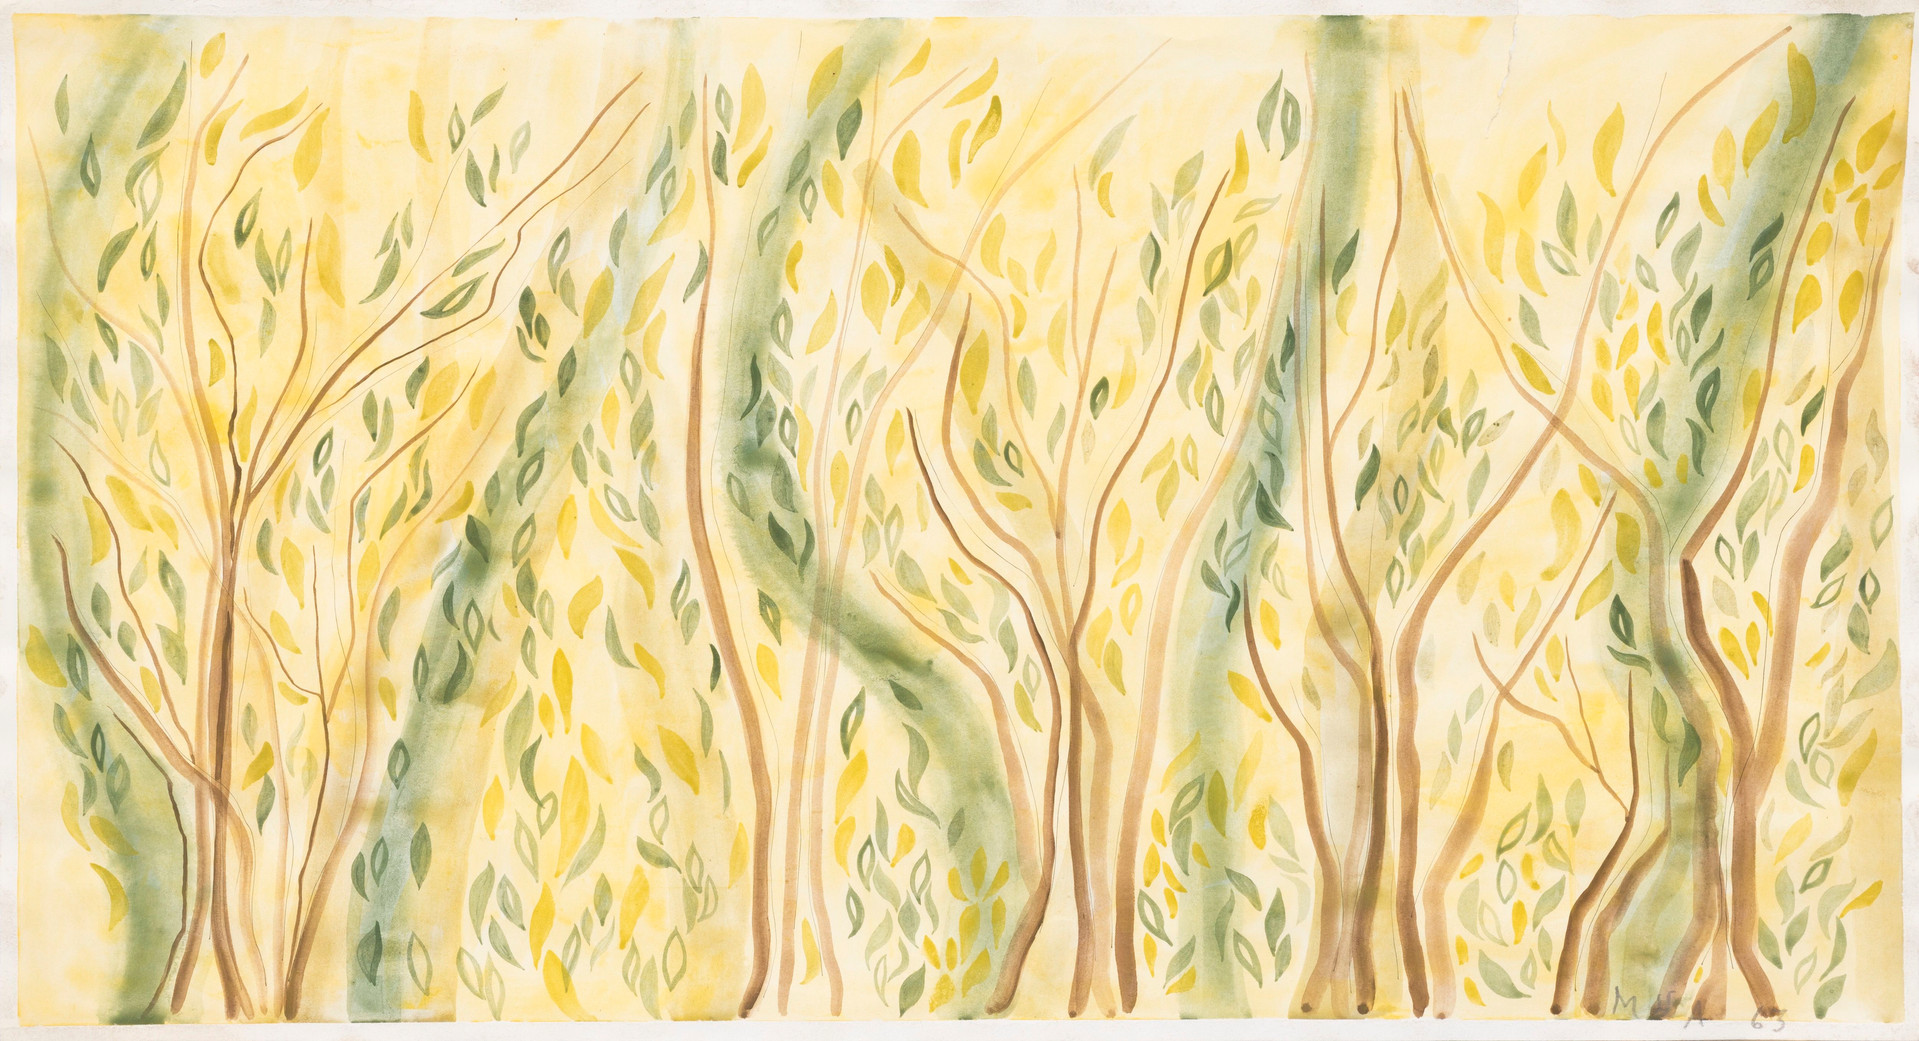 Untitled - trees with abstract leaves on yellow background